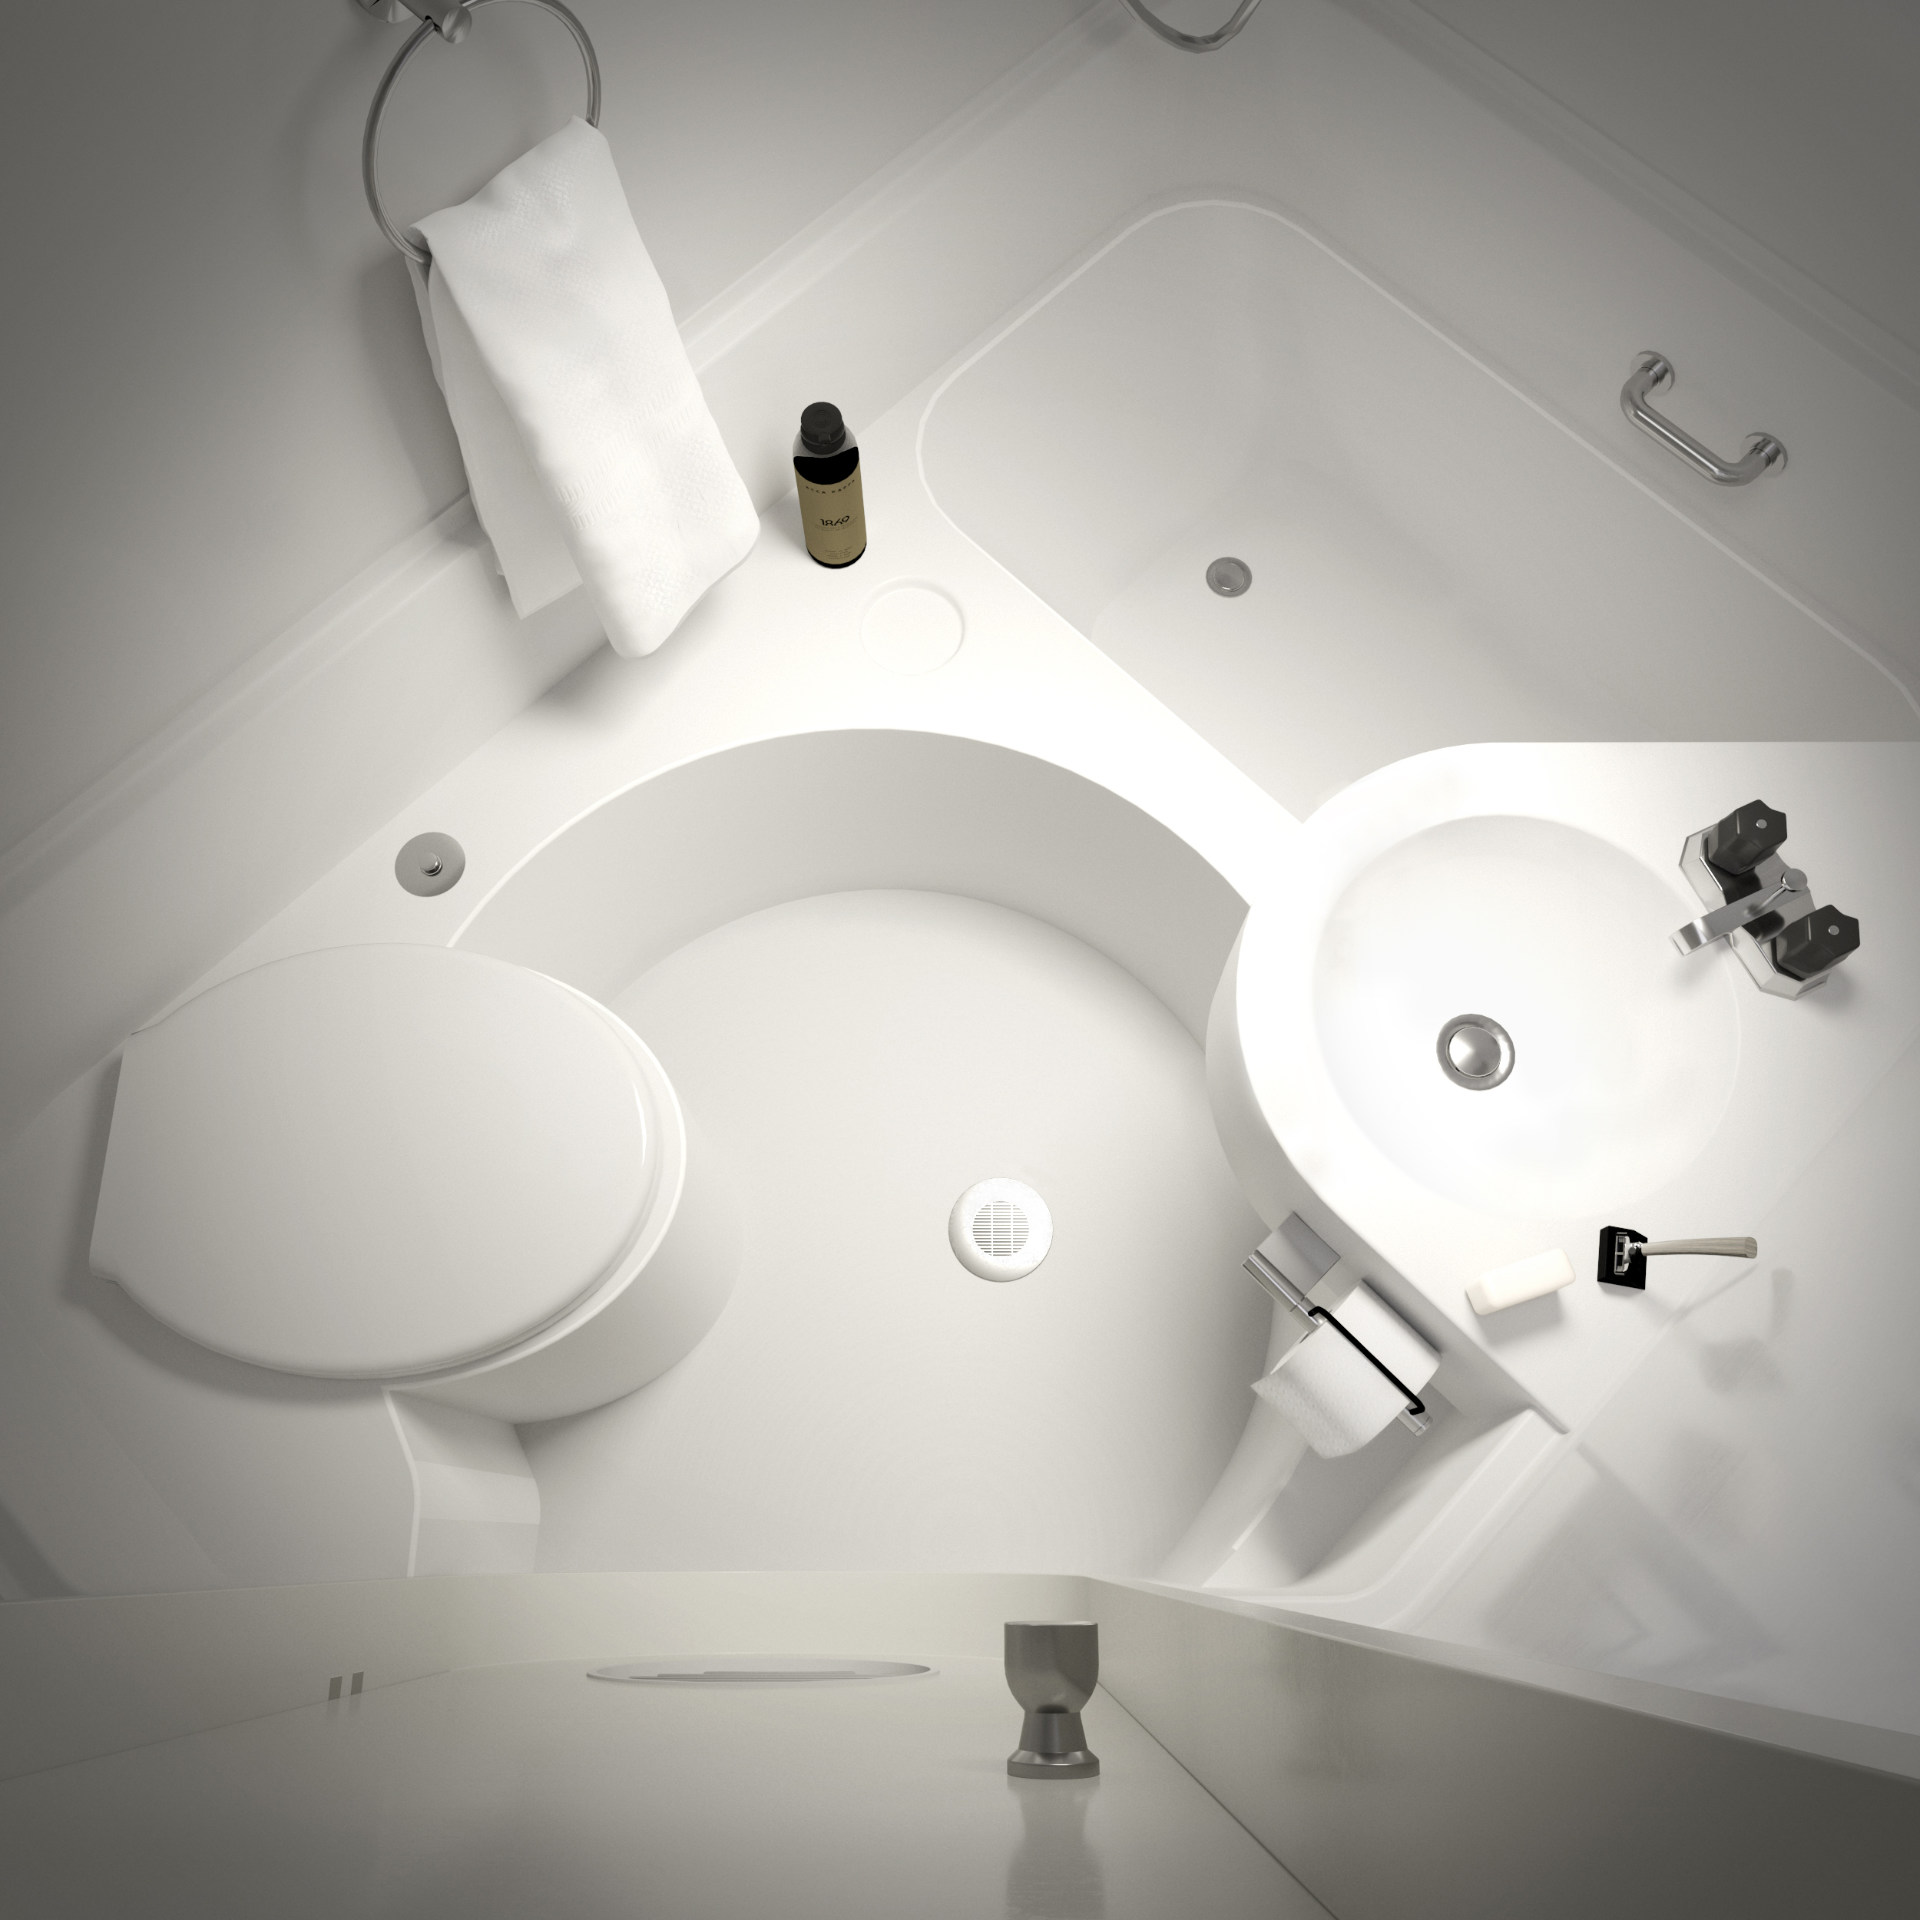 3D rendering of Nakagin Capsule - bathroom